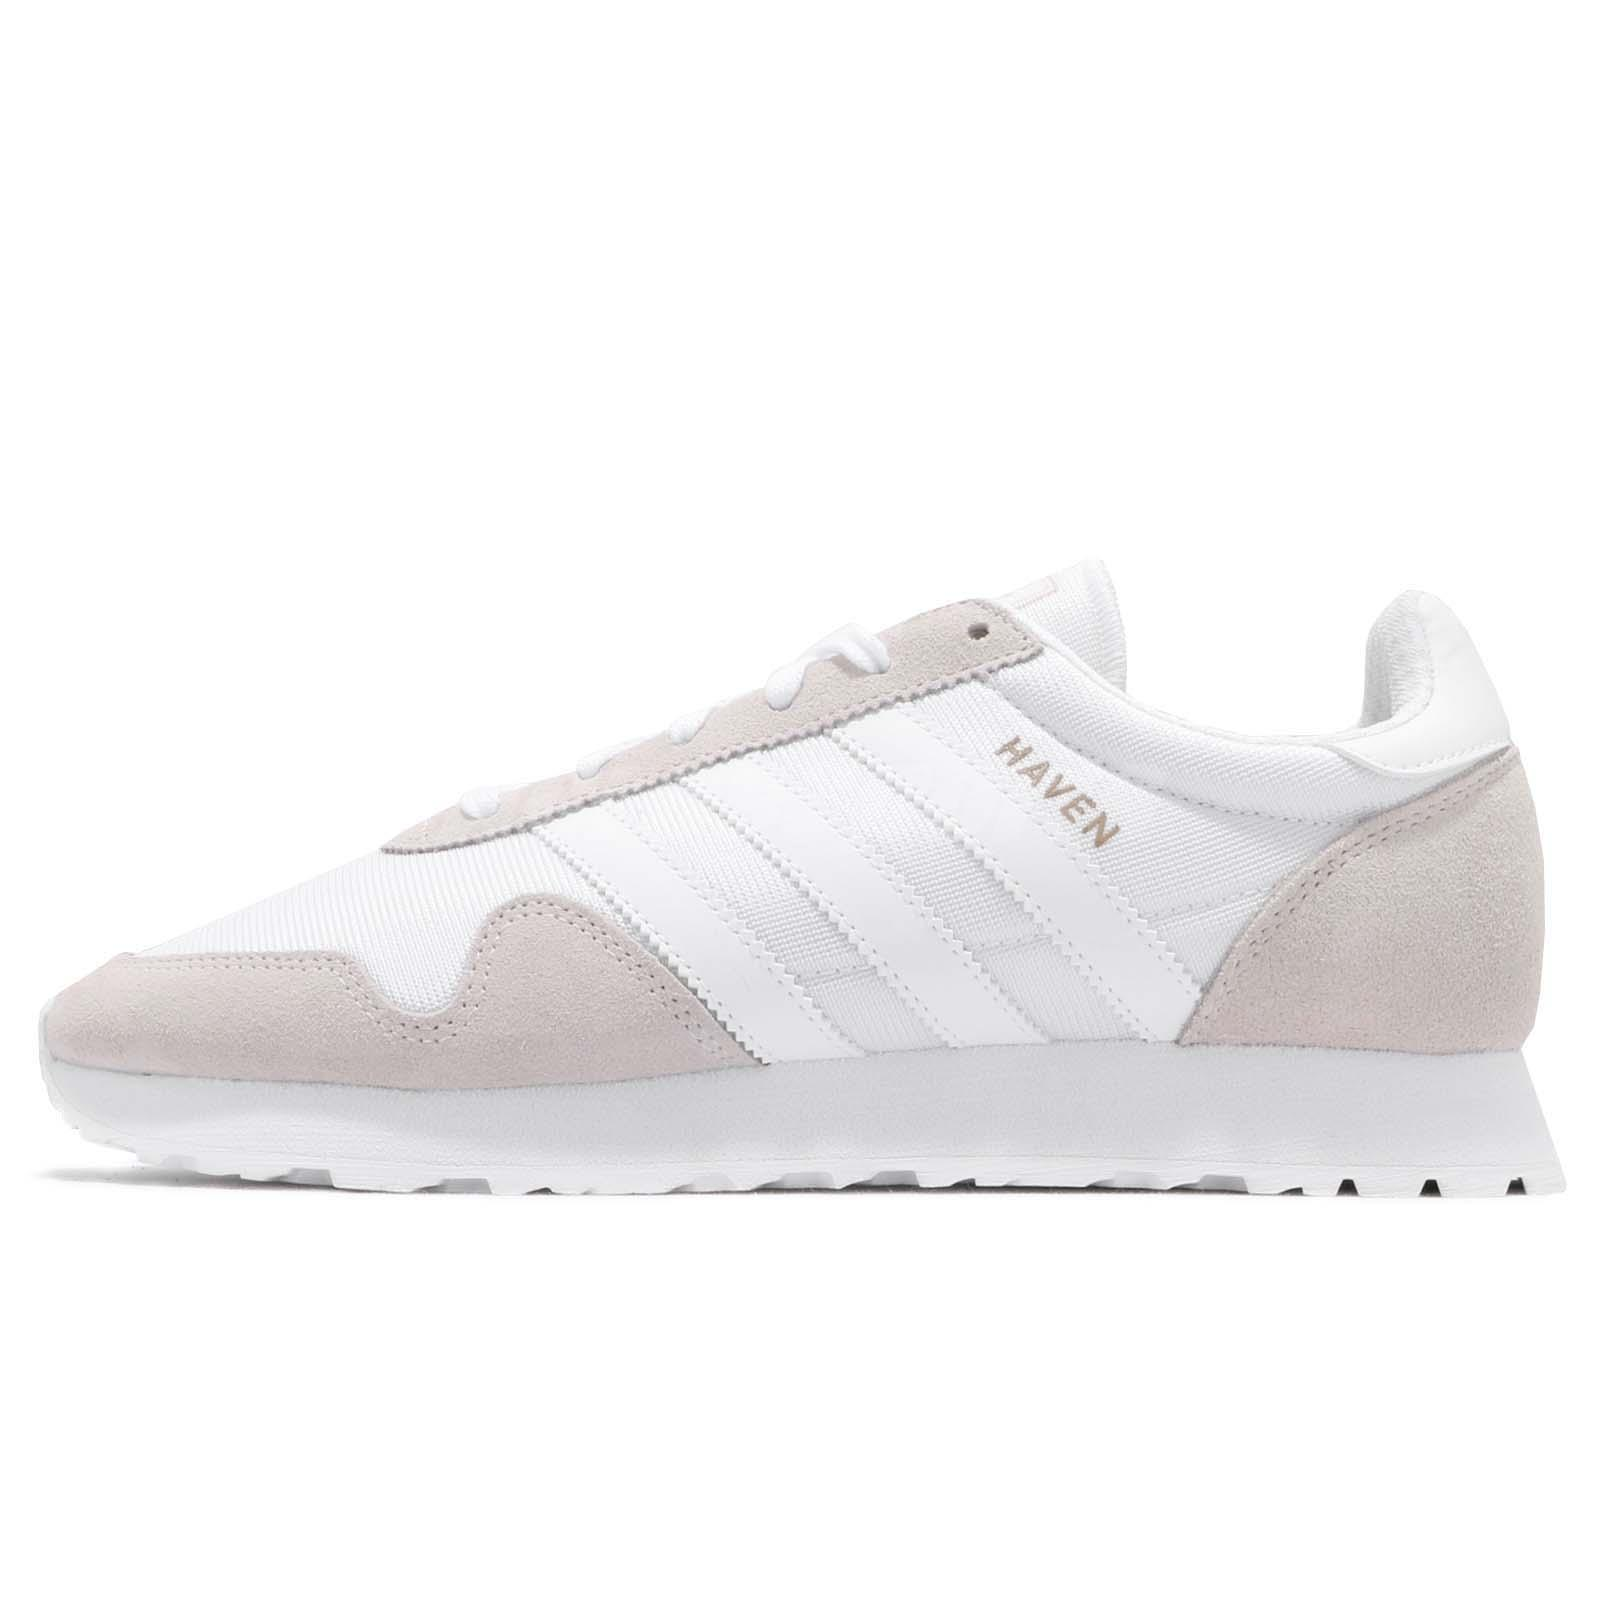 0a64ba50072 adidas Originals Haven Vintage White Grey Men Running Shoes Sneakers BY9718